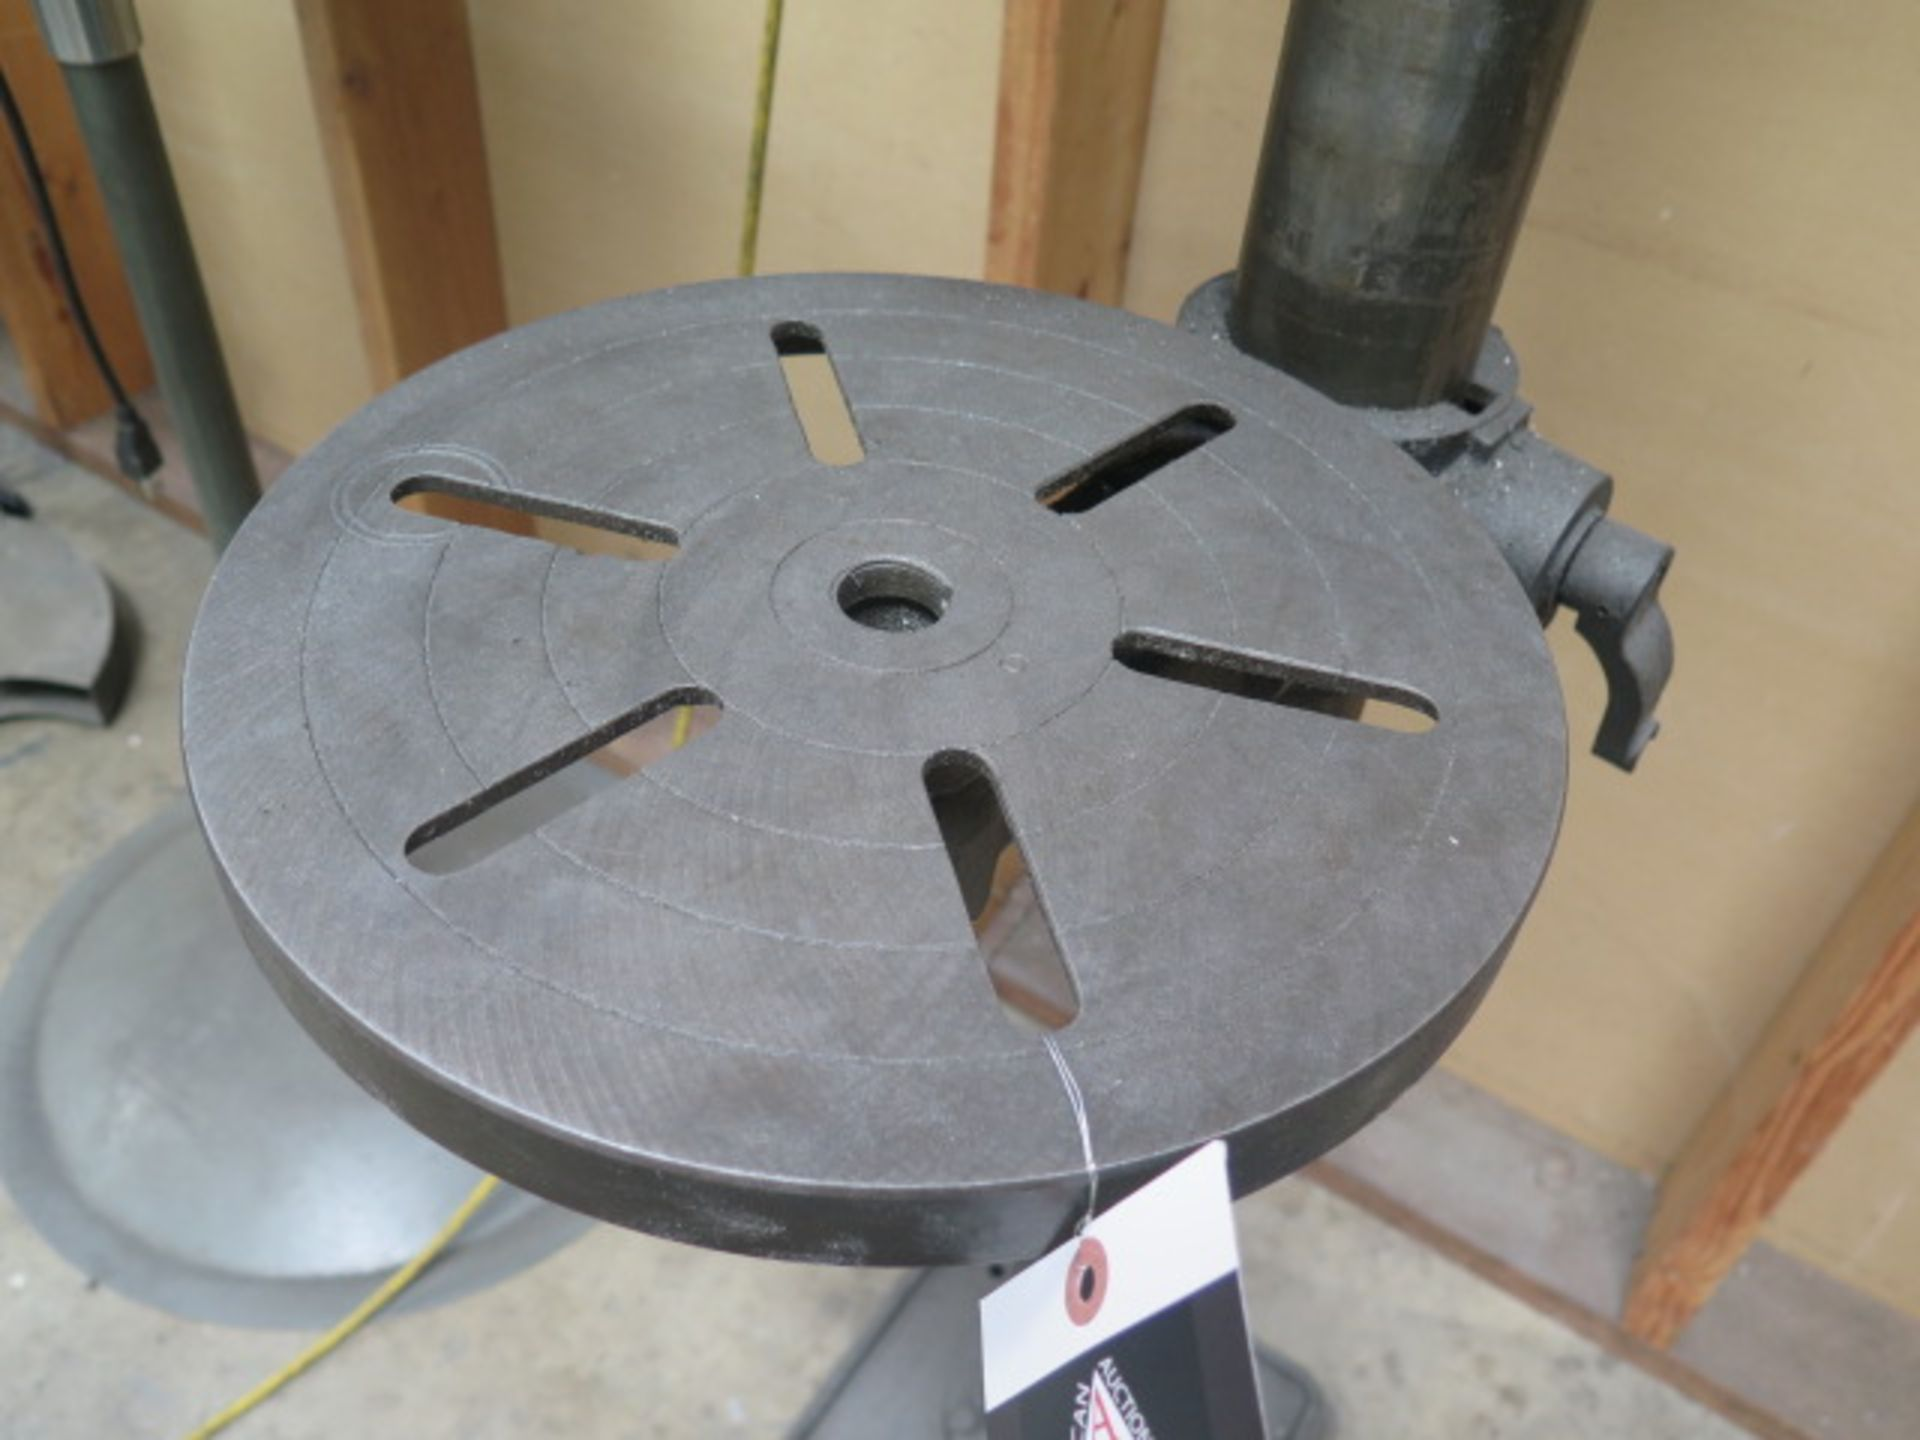 Jet Pedestal Drill Press (SOLD AS-IS - NO WARRANTY) - Image 6 of 7